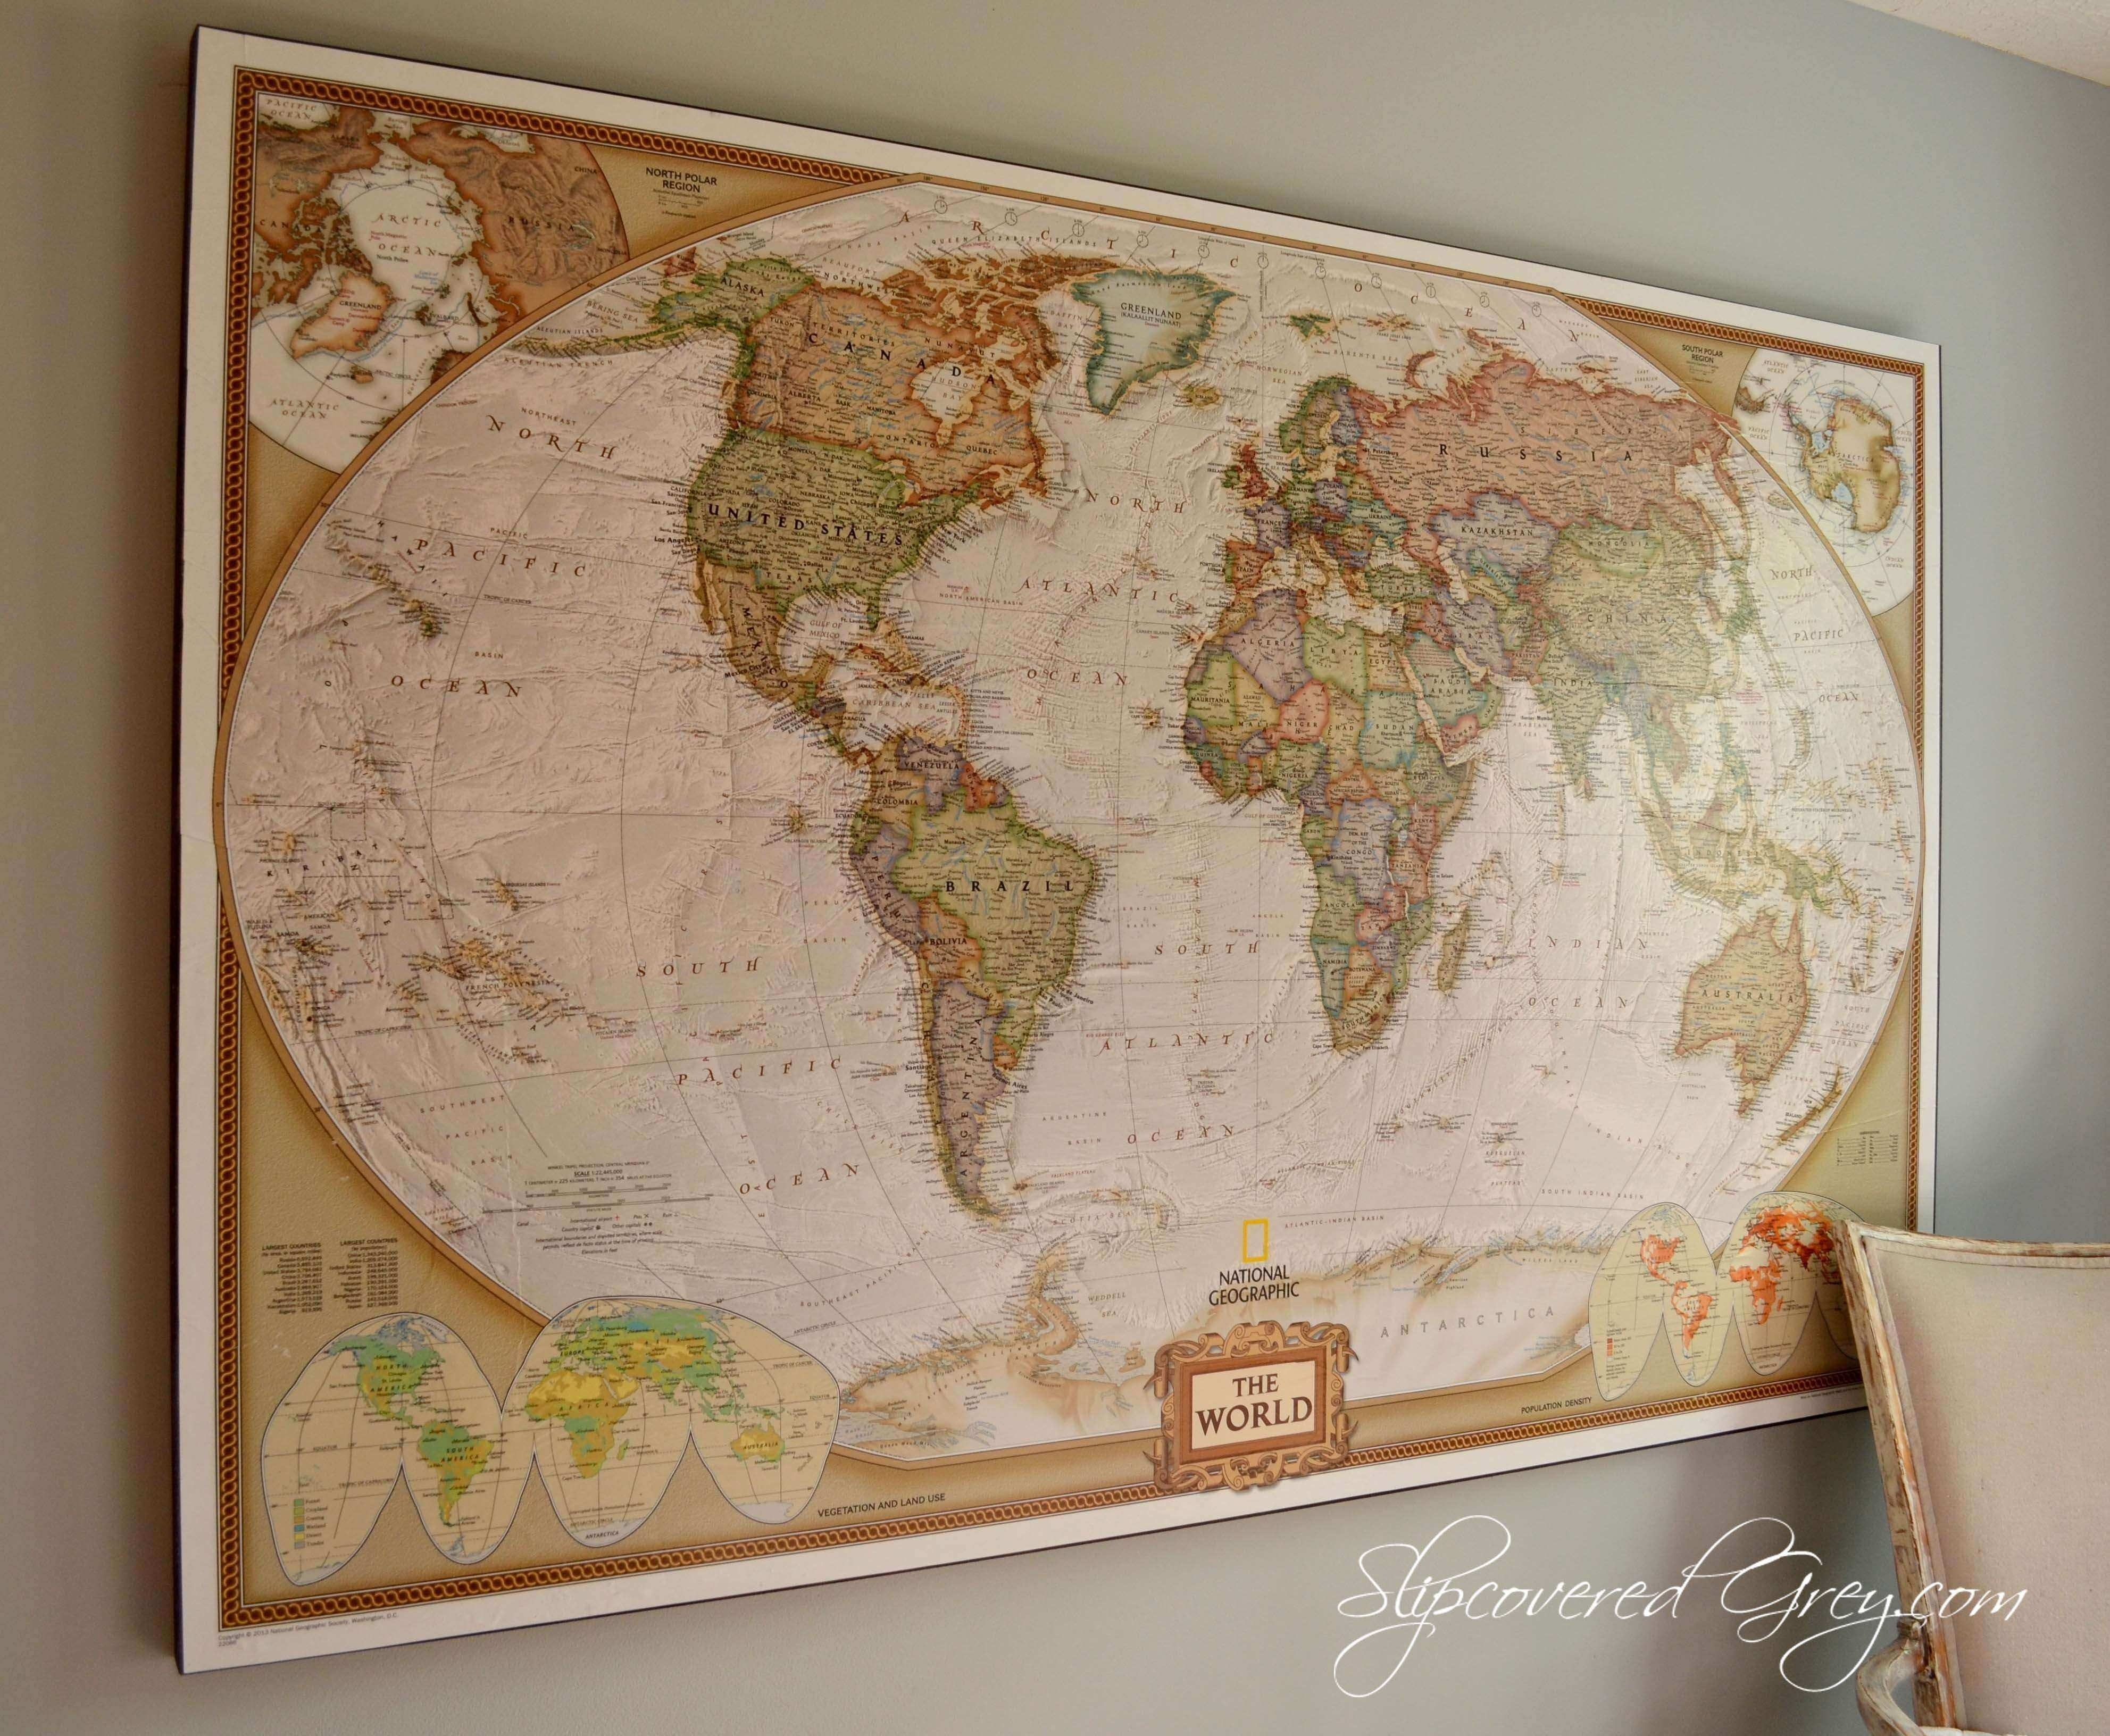 Us Map Wall Art New United States Wall Map Framed | Wall Art Ideas throughout United States Map Wall Art (Image 12 of 20)